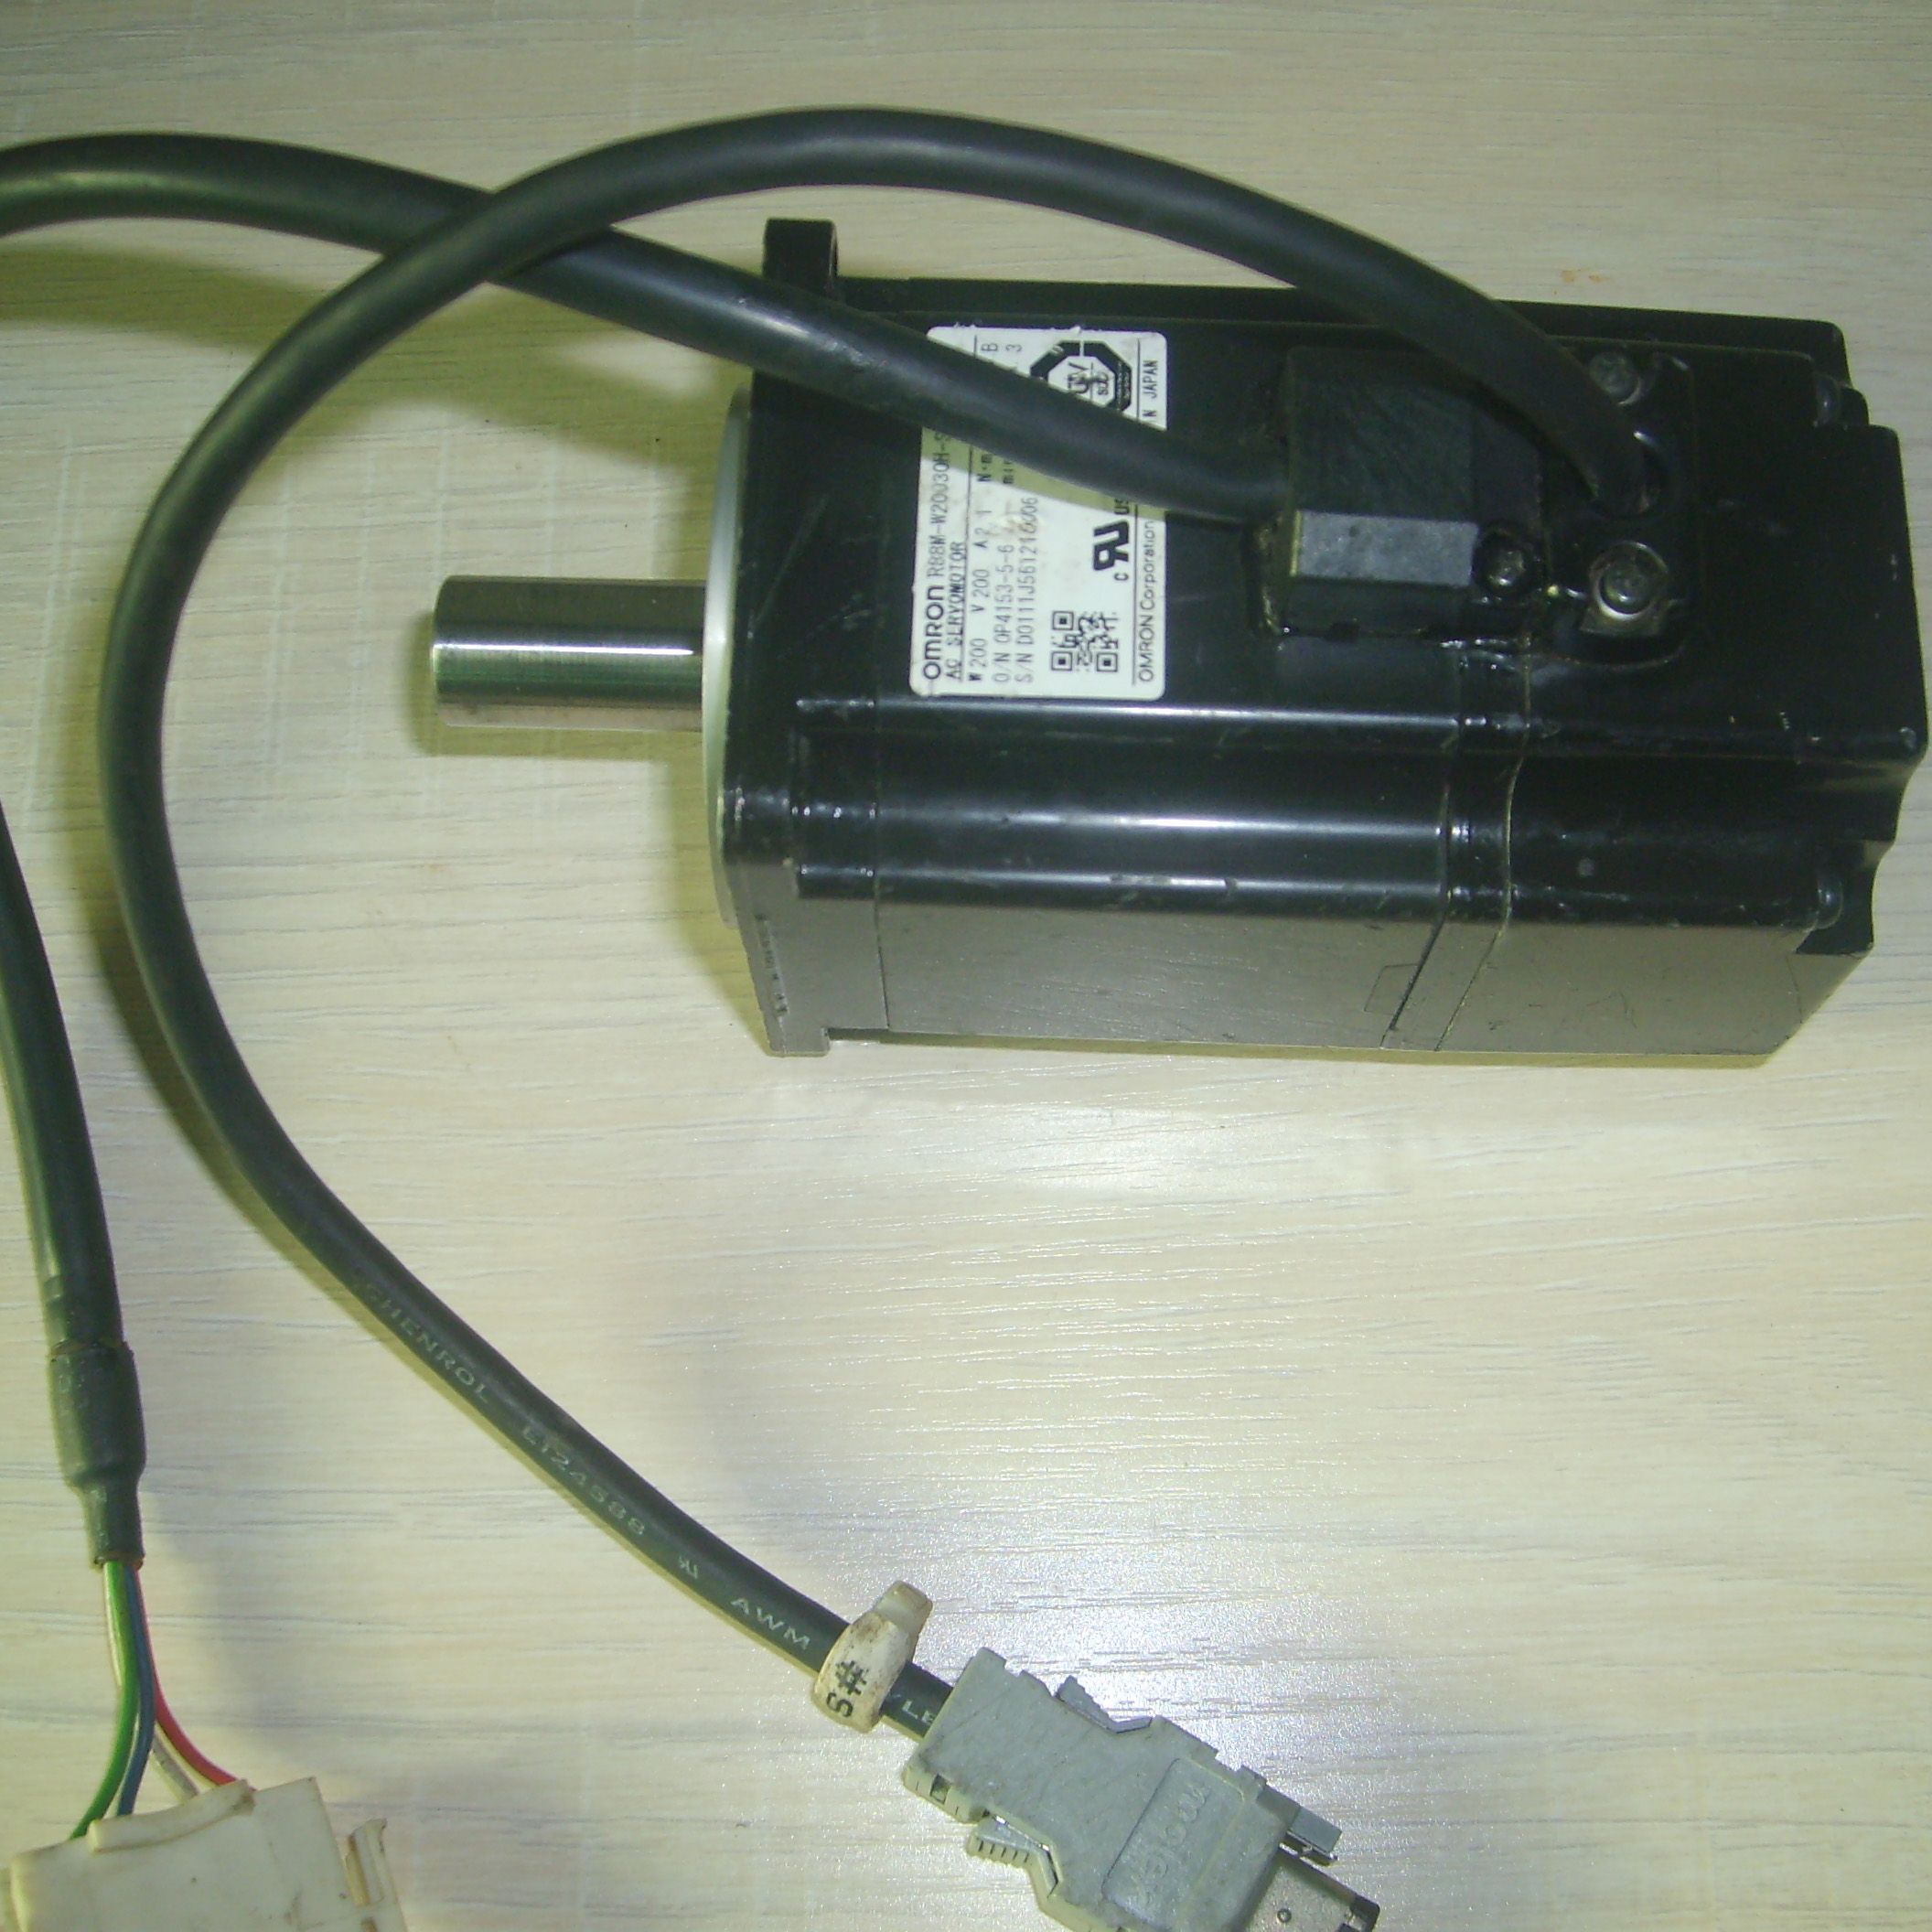 R7M-A75030-S1 AC SERVO MOTOR USED & TESTED WORKINGR7M-A75030-S1 AC SERVO MOTOR USED & TESTED WORKING